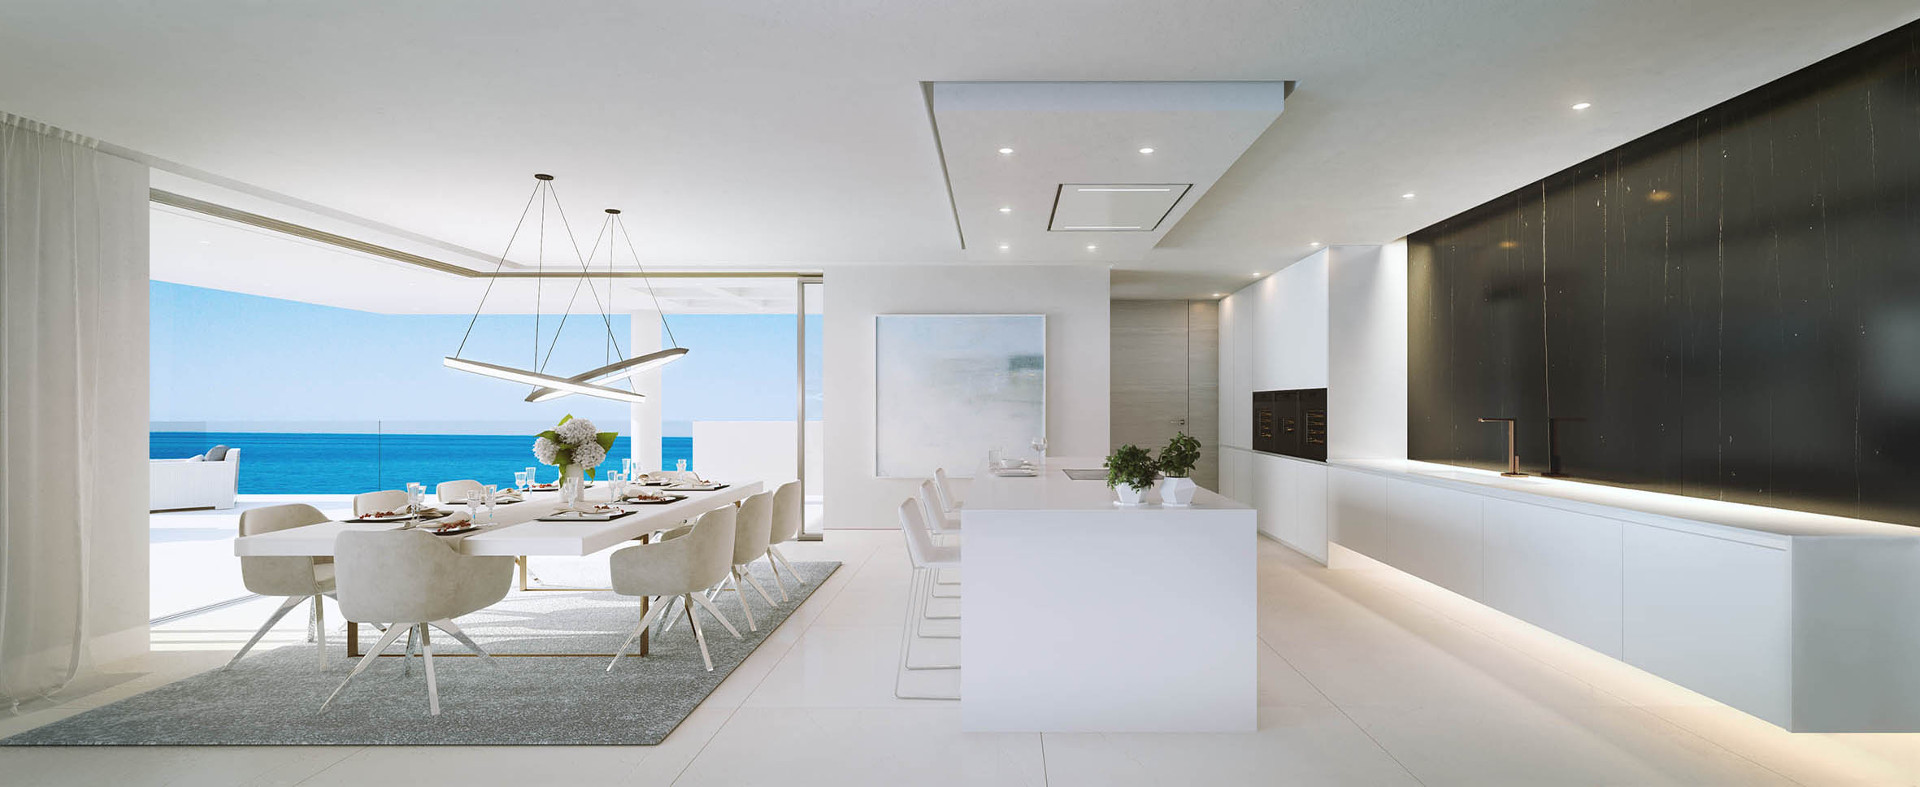 Emare Estepona Beach front off plan Luxury Modern Apartments and  Penthouses, Marbella, Spain